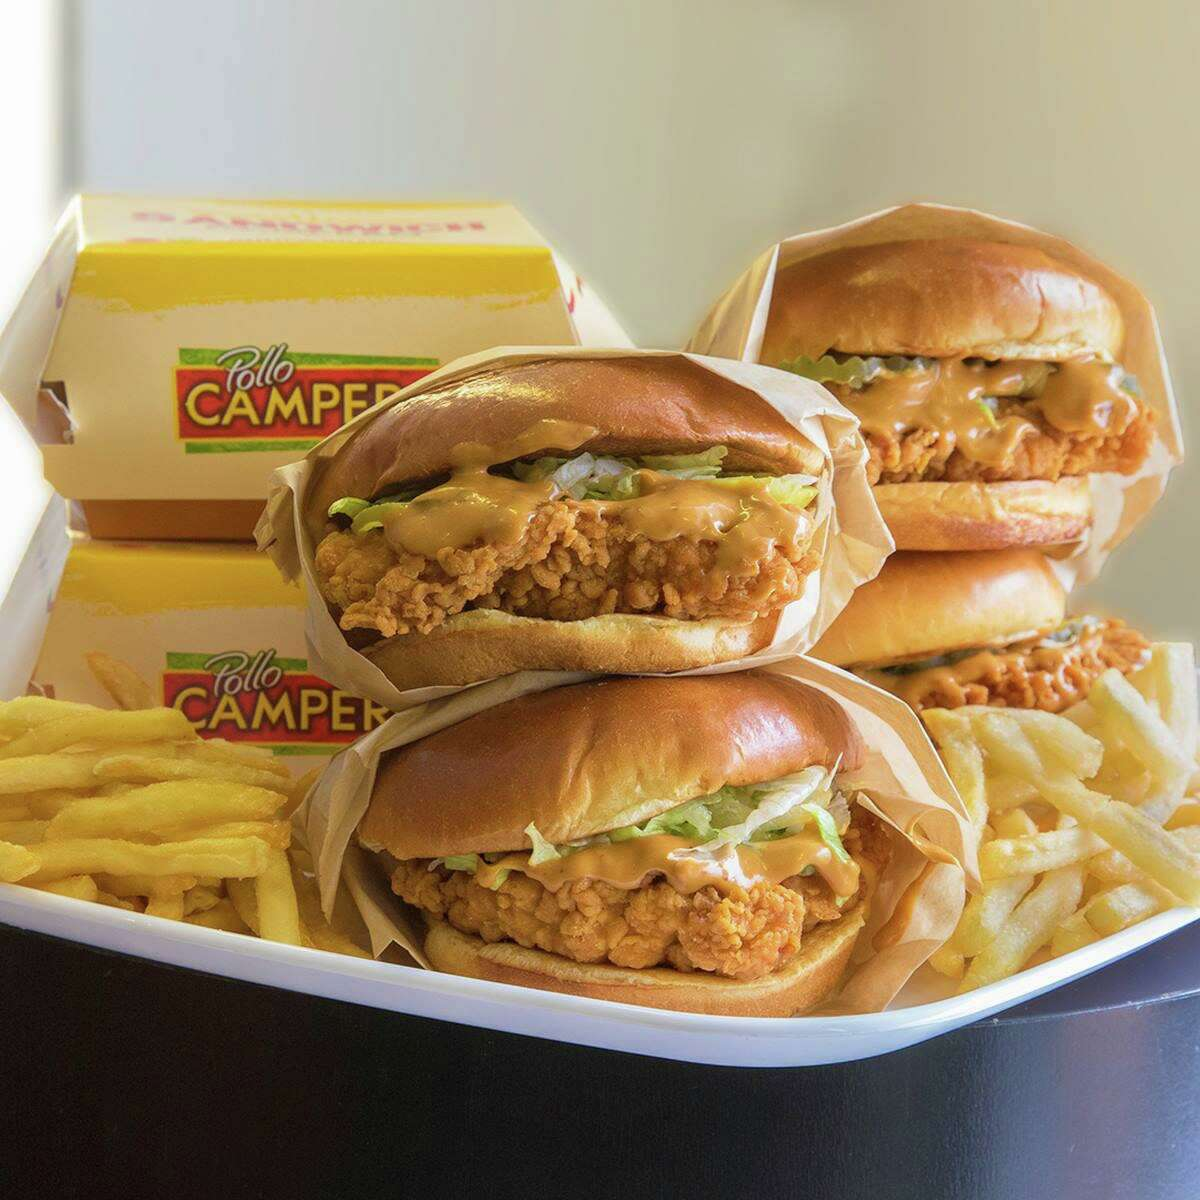 To coincide with its 50th anniversary, the restaurant introduced a new chicken sandwich recipe in both fried and grilled options.